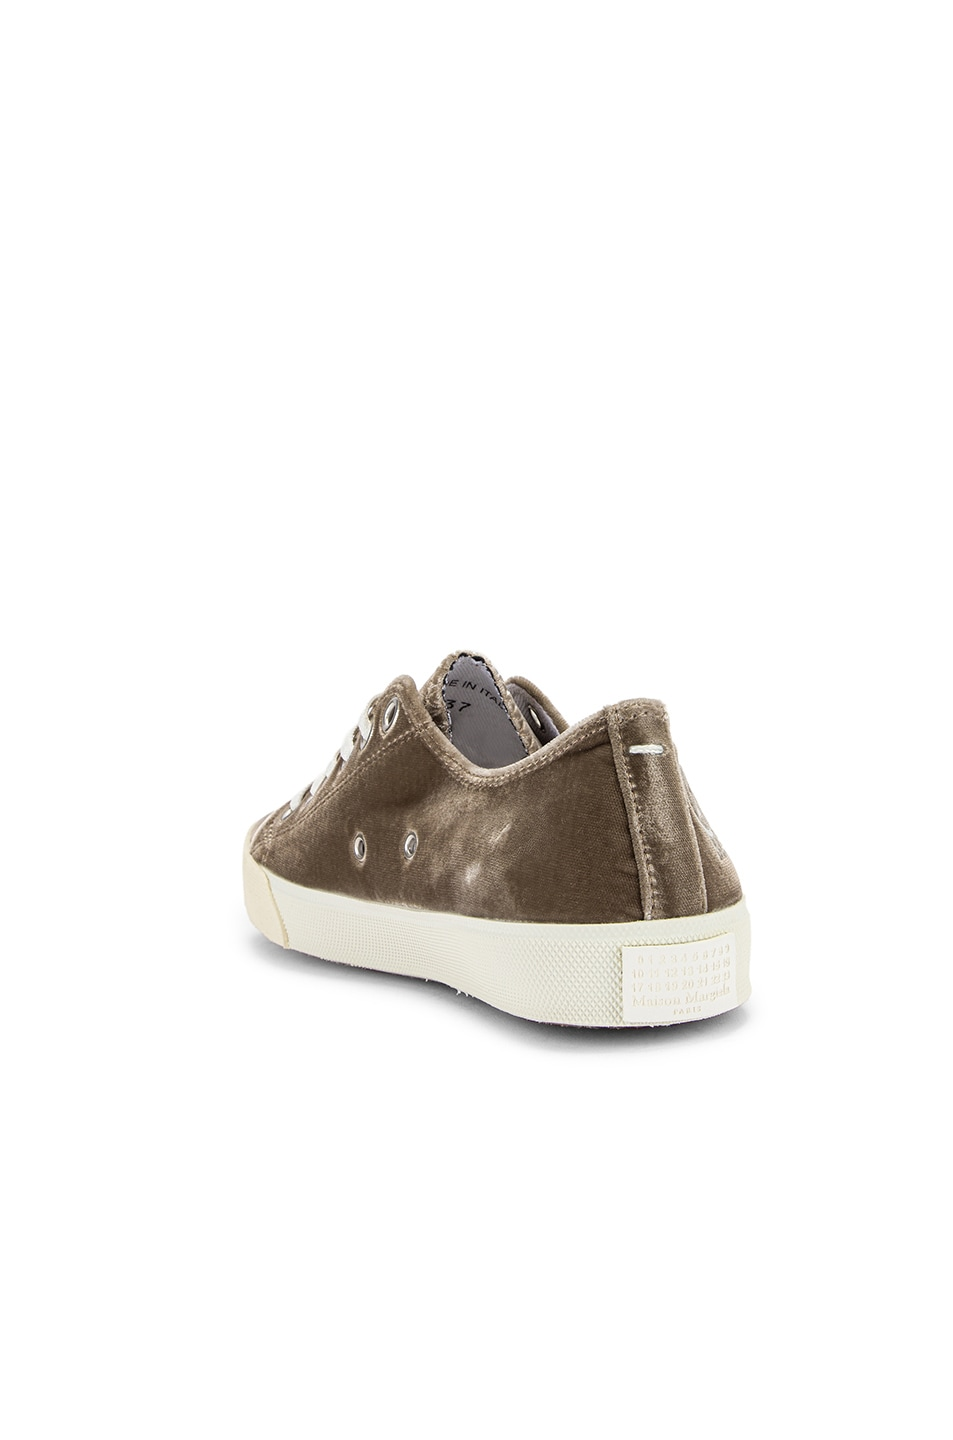 Image 4 of Maison Margiela Toe Lace Up Sneakers in Champagne Beige